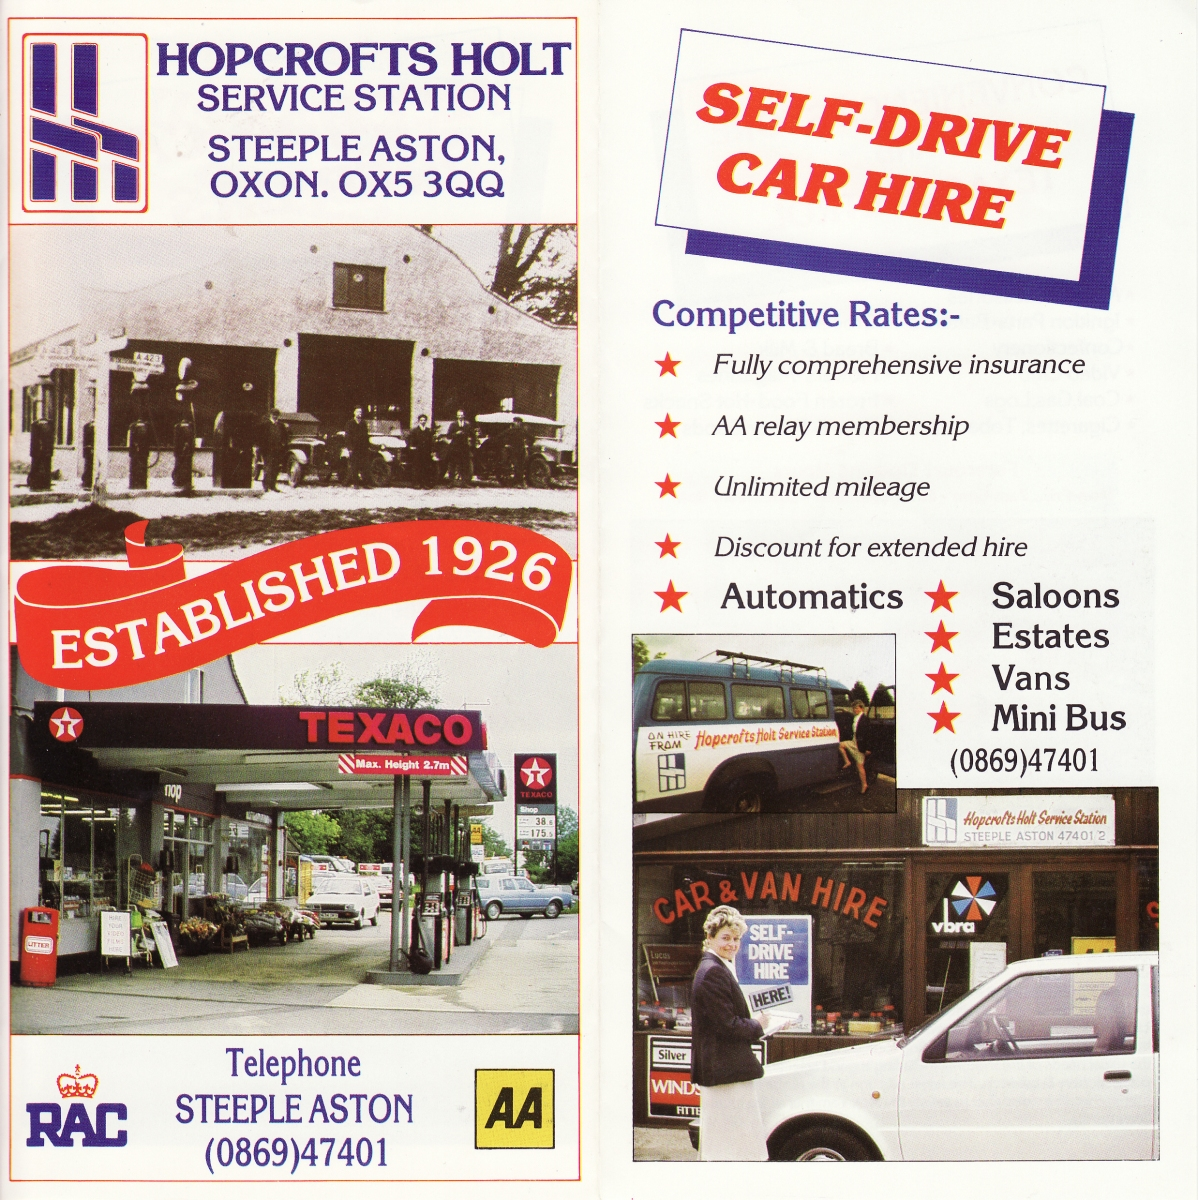 Hopcrofts Holt Service Station advertisement - 2.